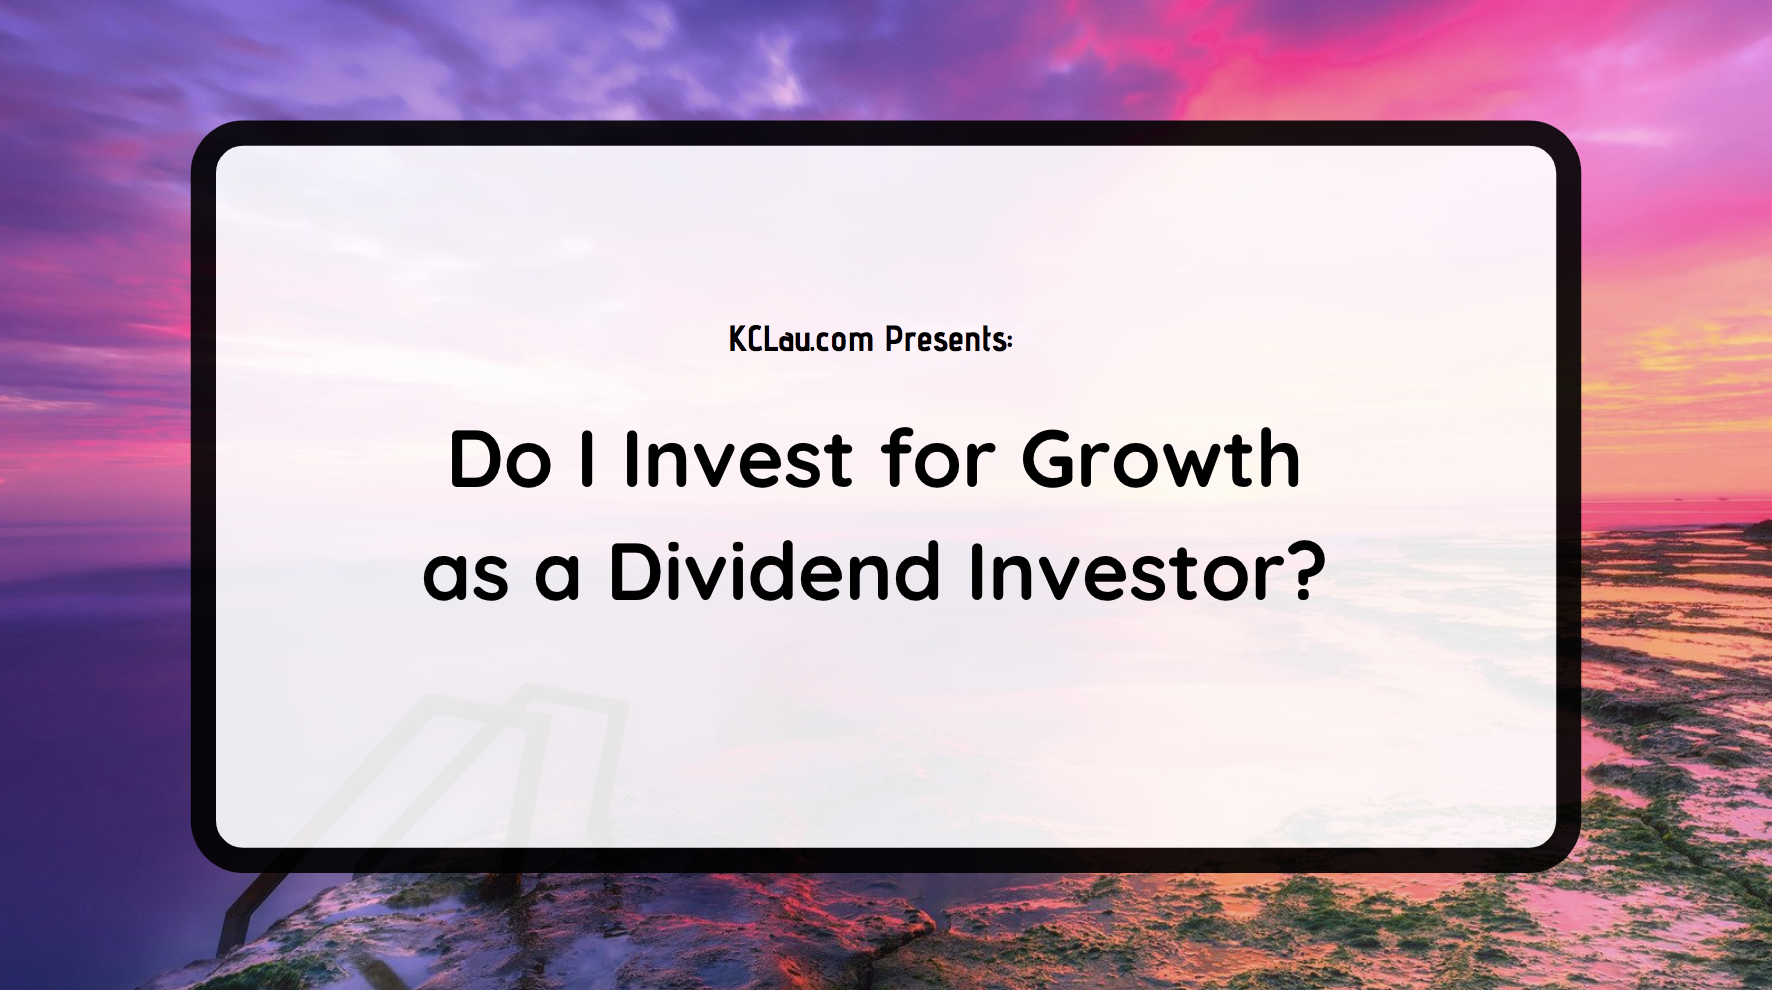 Do I Invest for Growth as a Dividend Investor?